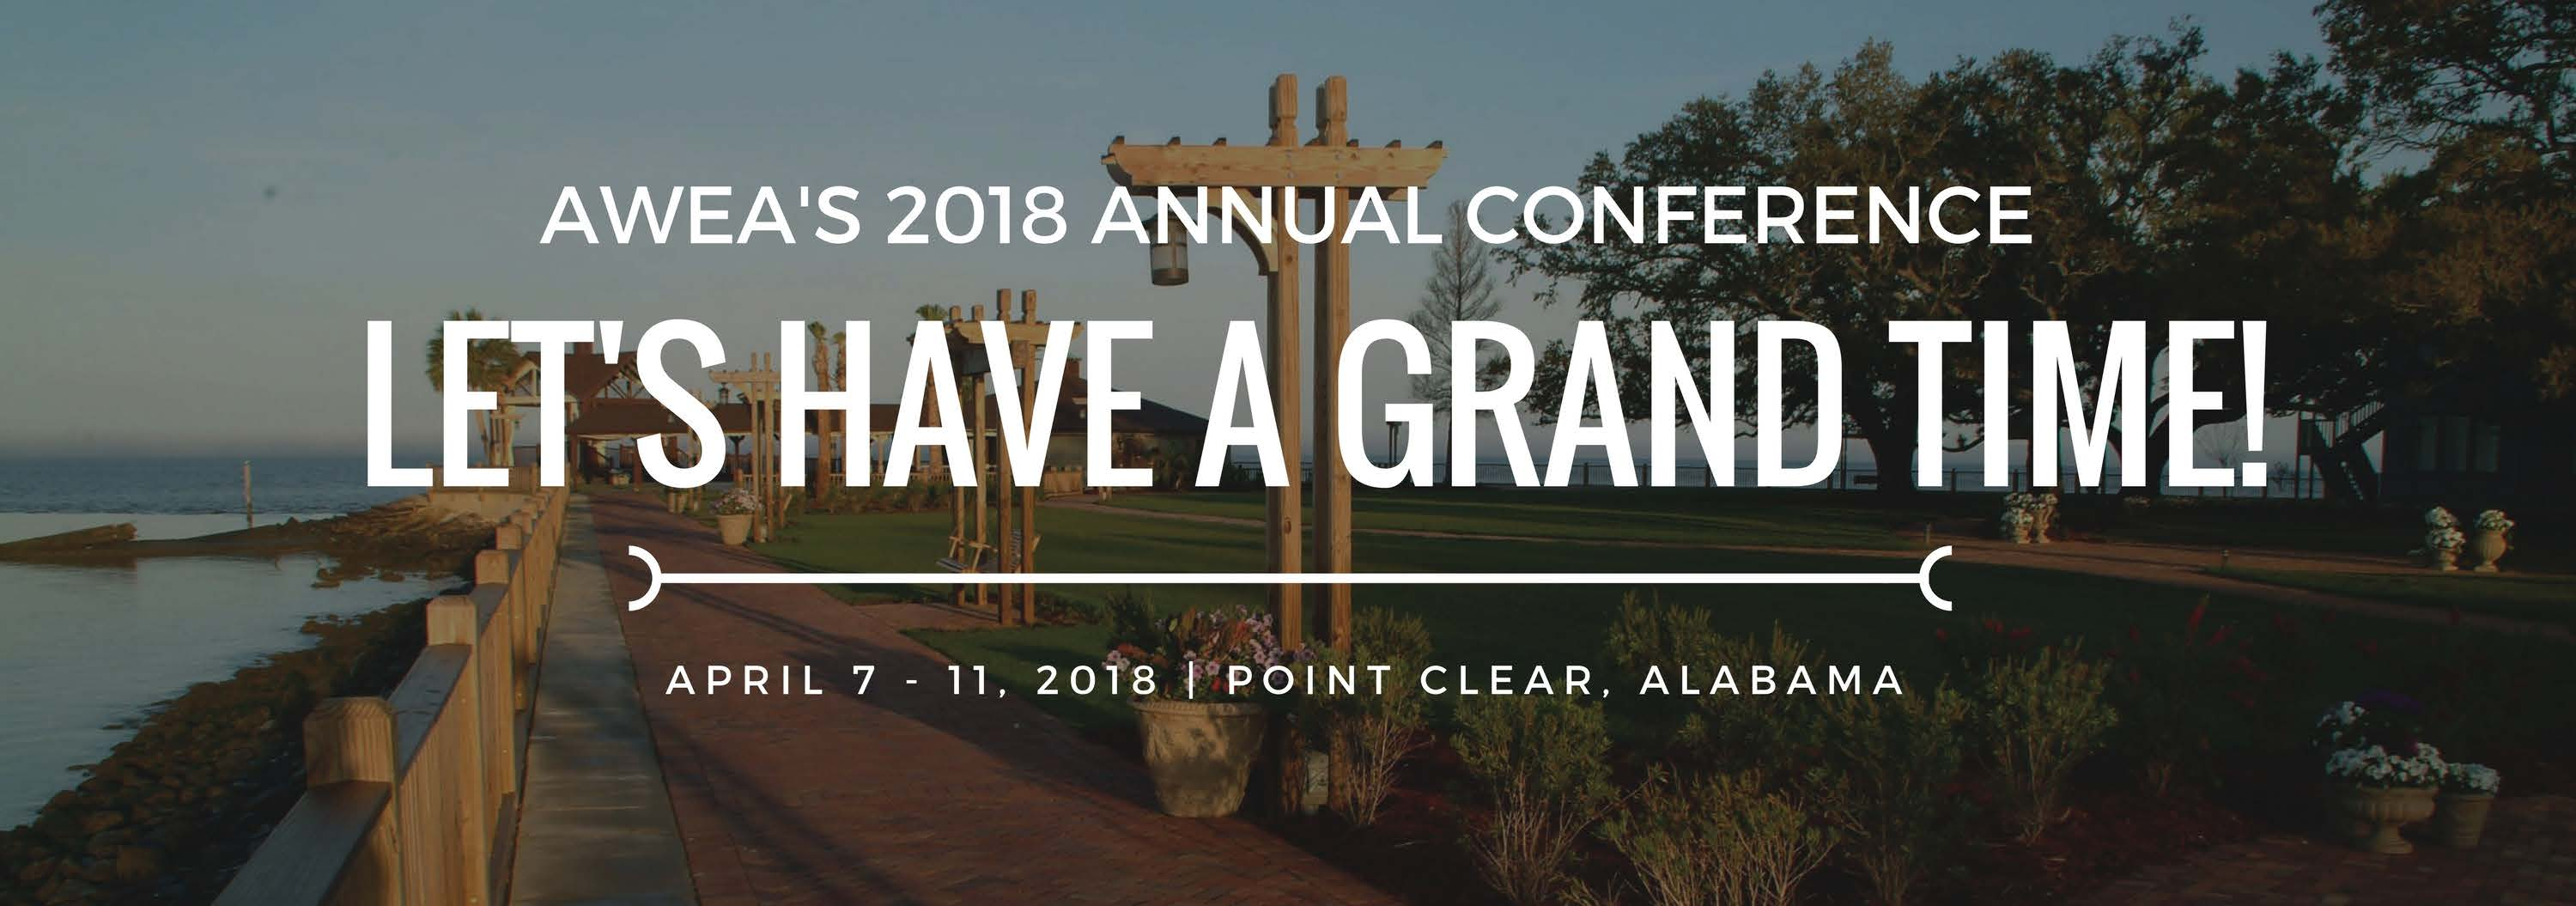 AWEA's 2018 Conference - Let's Have a Grand Time